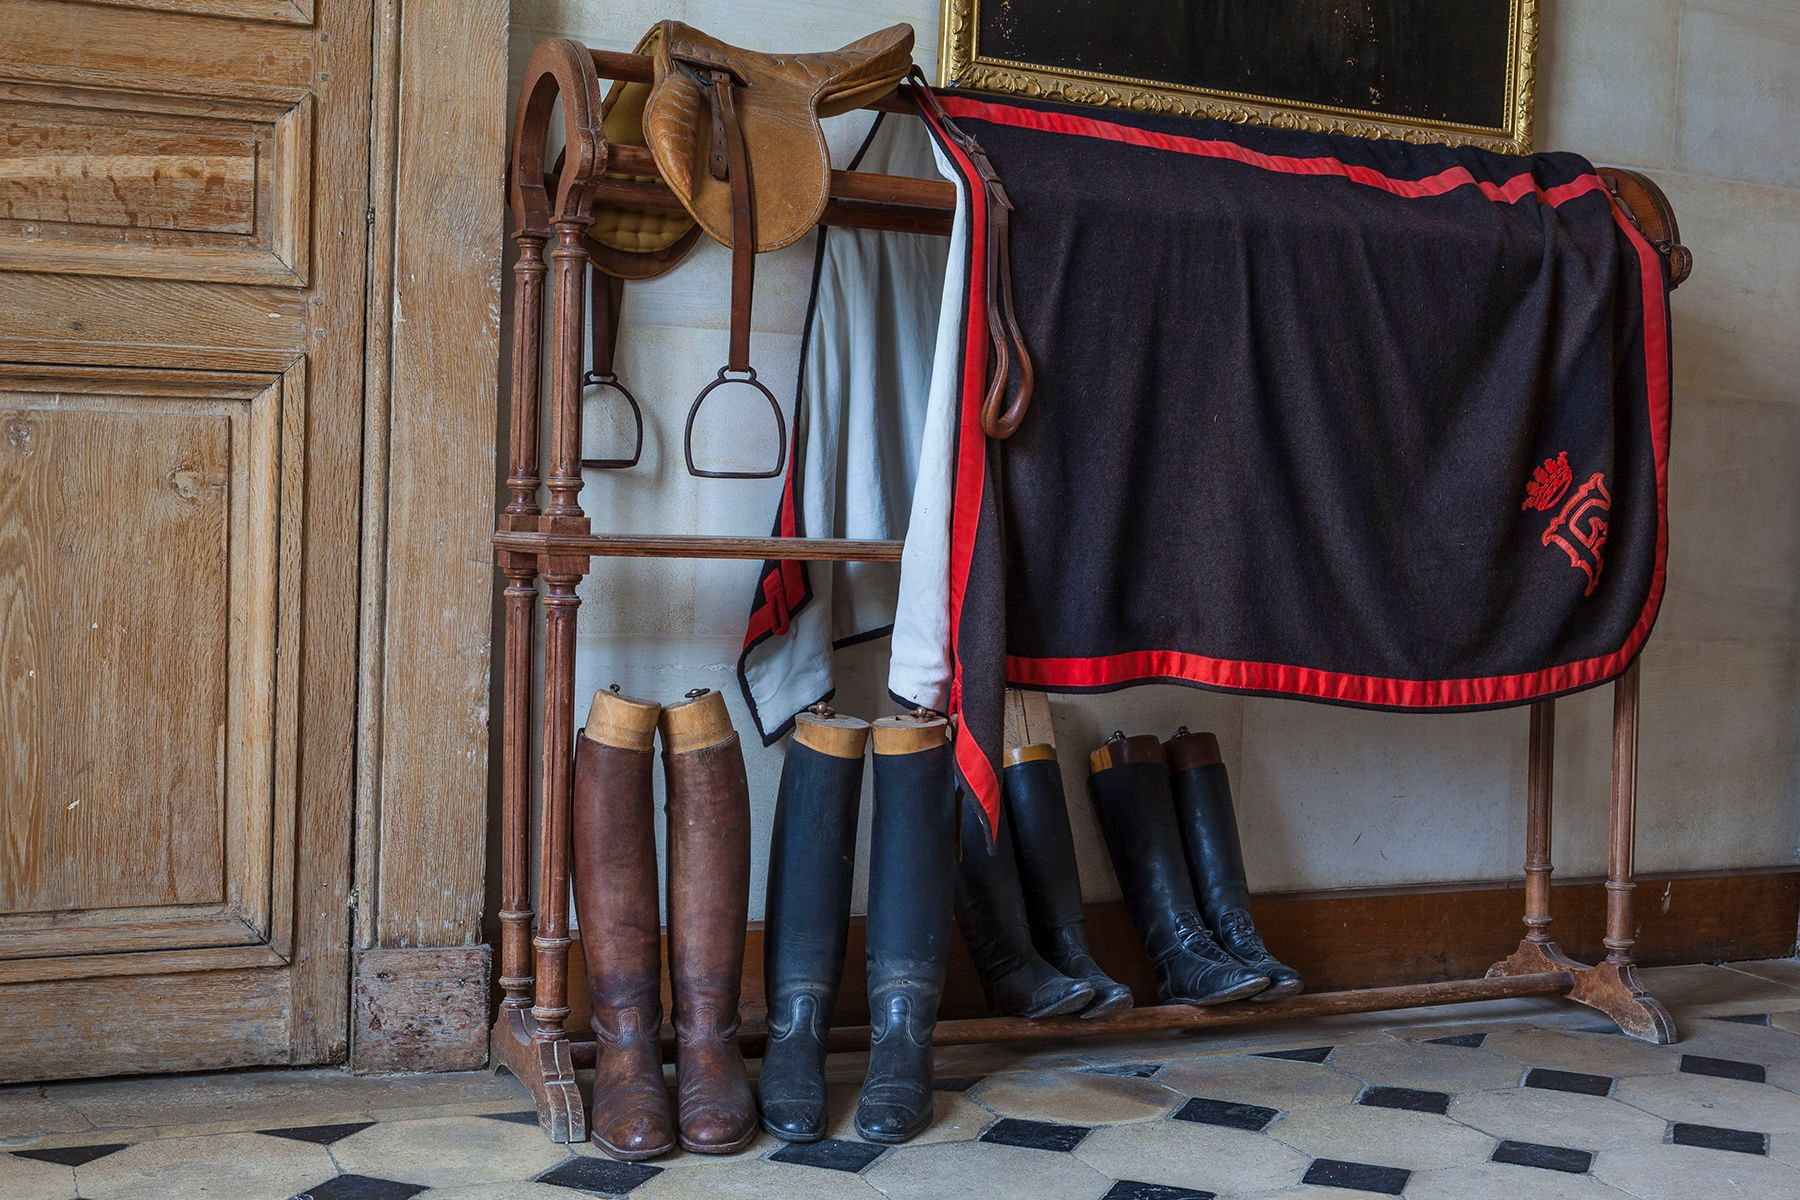 FERTE SAINT-AUBIN, SADDLE, BOOTS AND COOLER